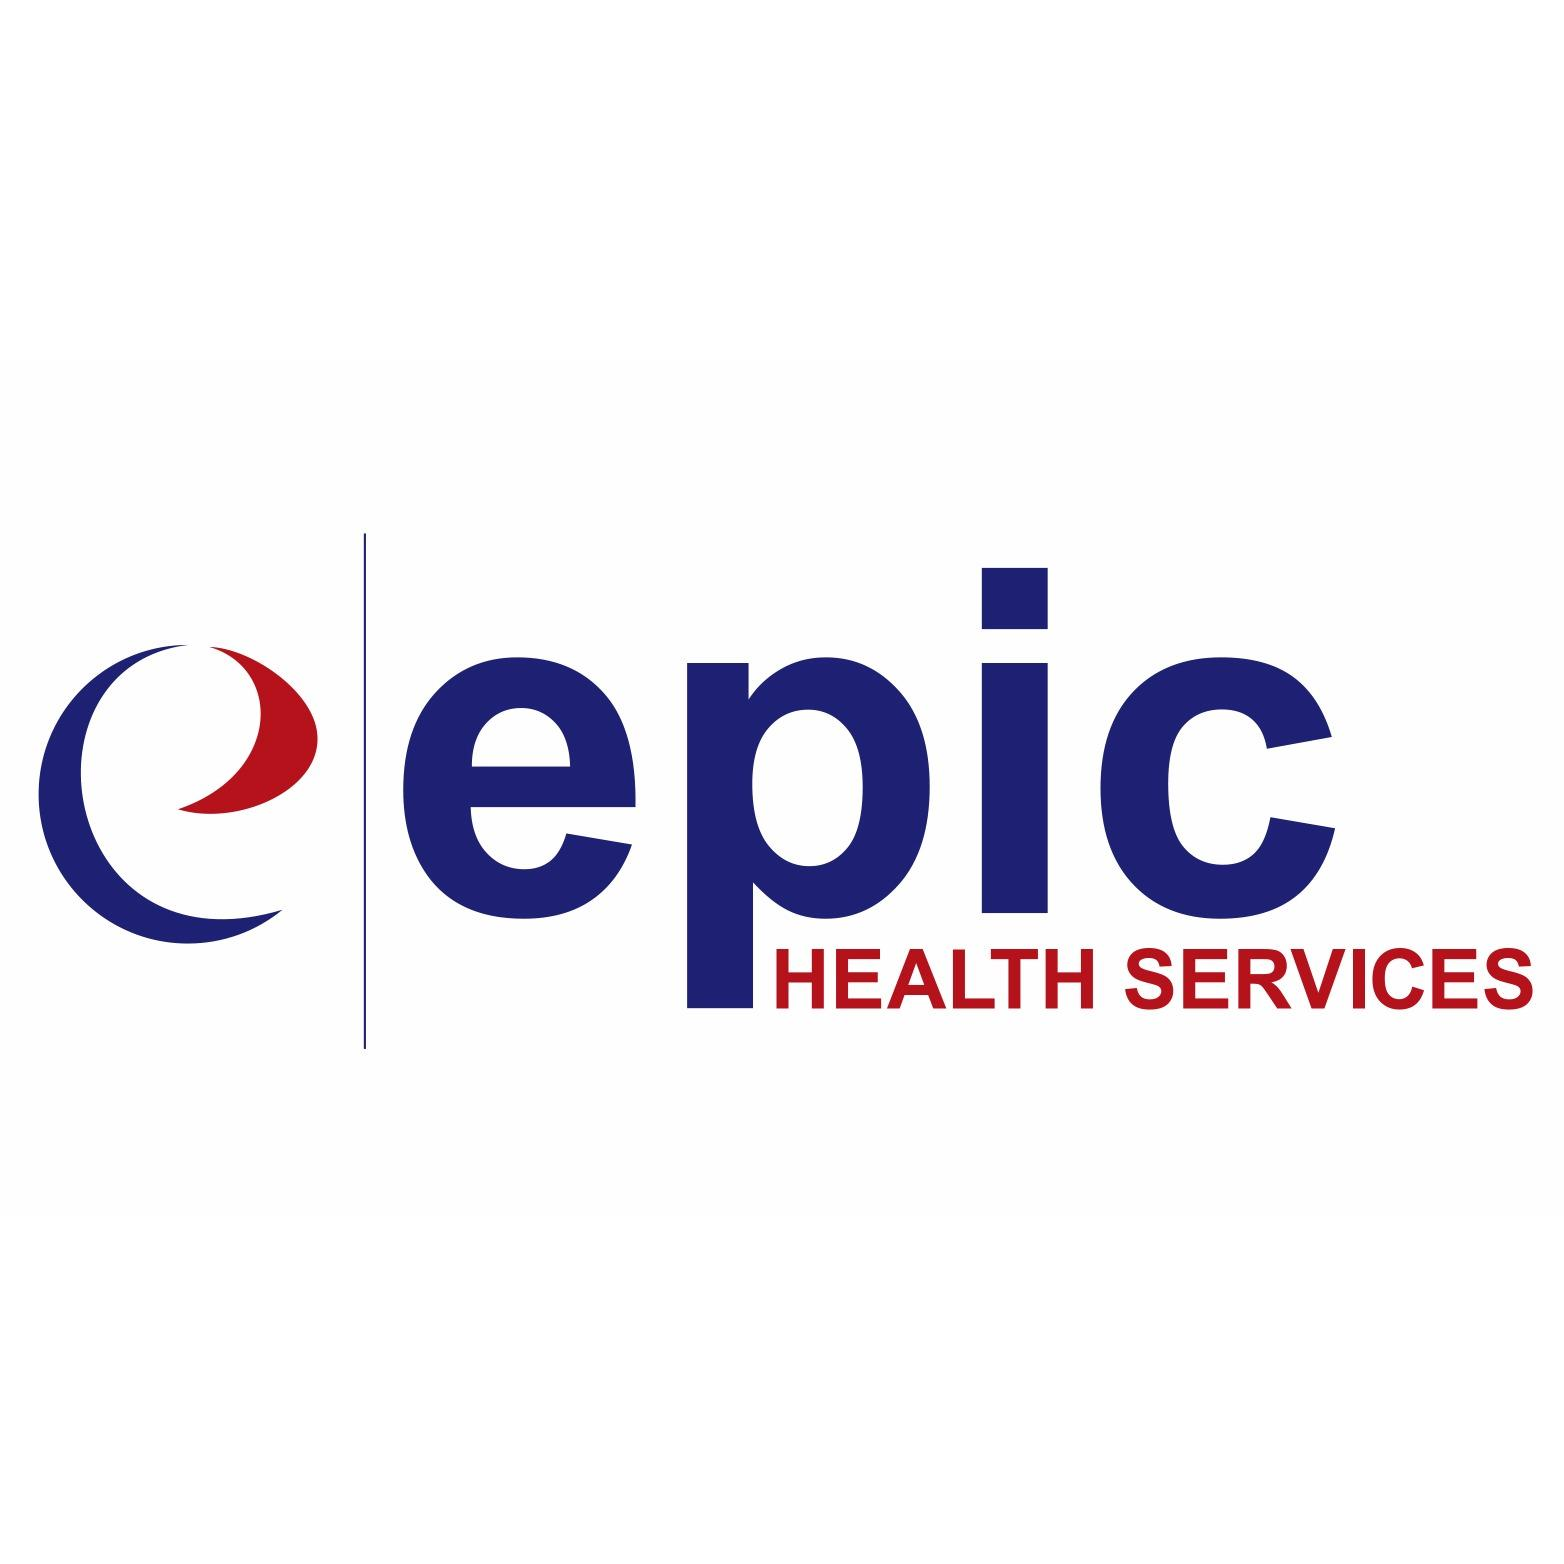 Epic Health Services - Hamilton, NJ 08691 - (609)528-2188 | ShowMeLocal.com